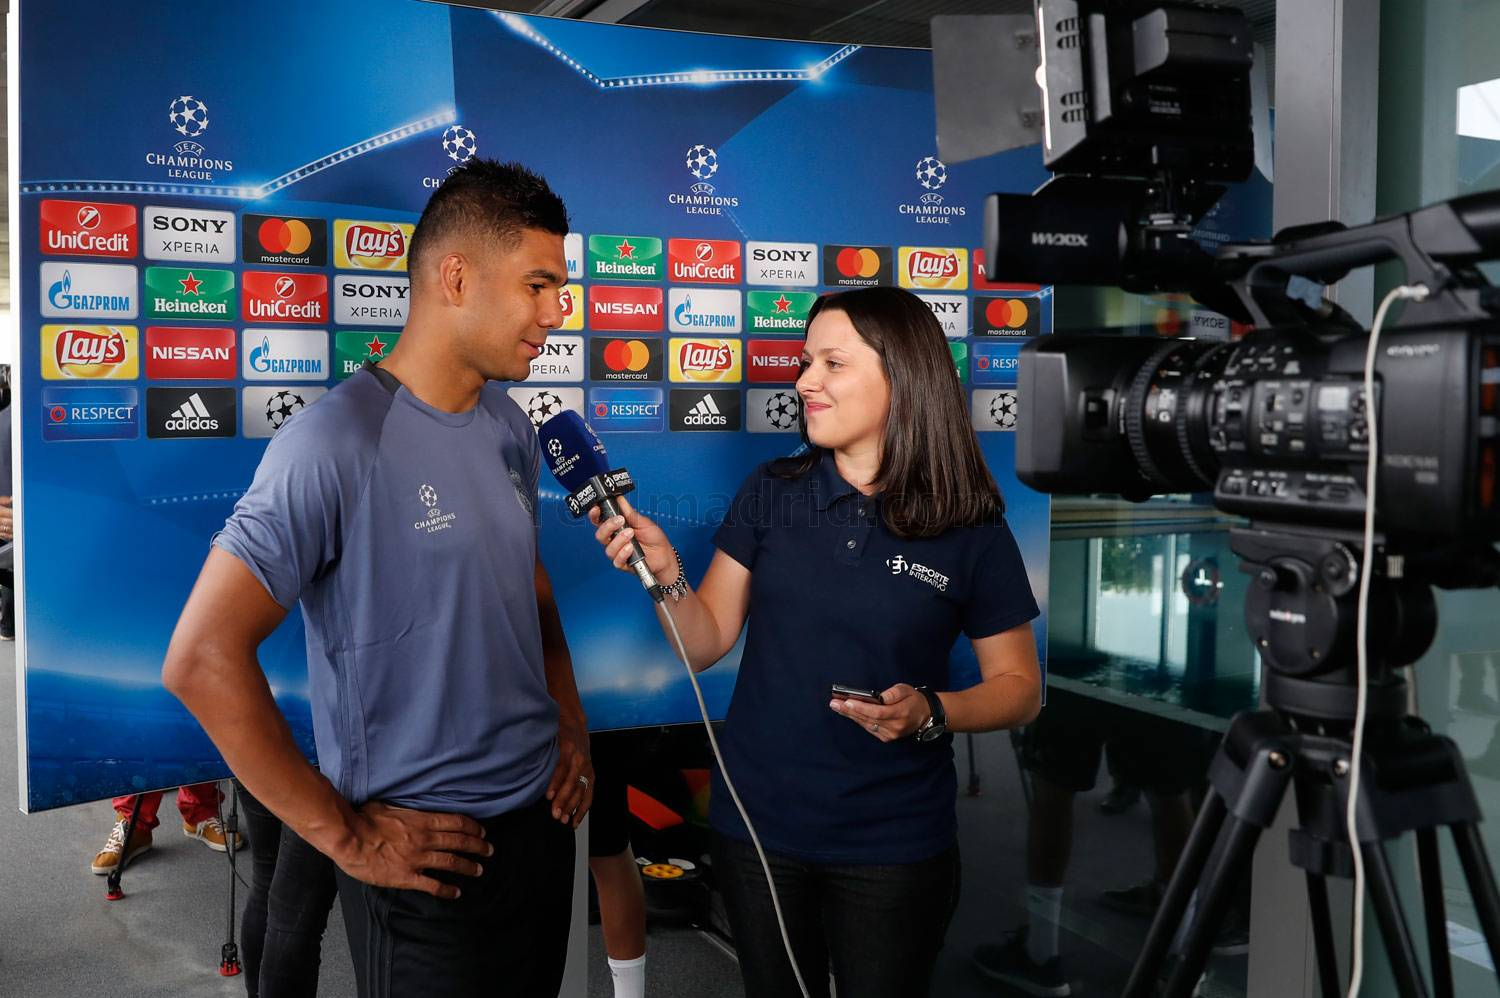 Real Madrid - Casemiro durante el Open Media Day 2017 - 30-05-2017